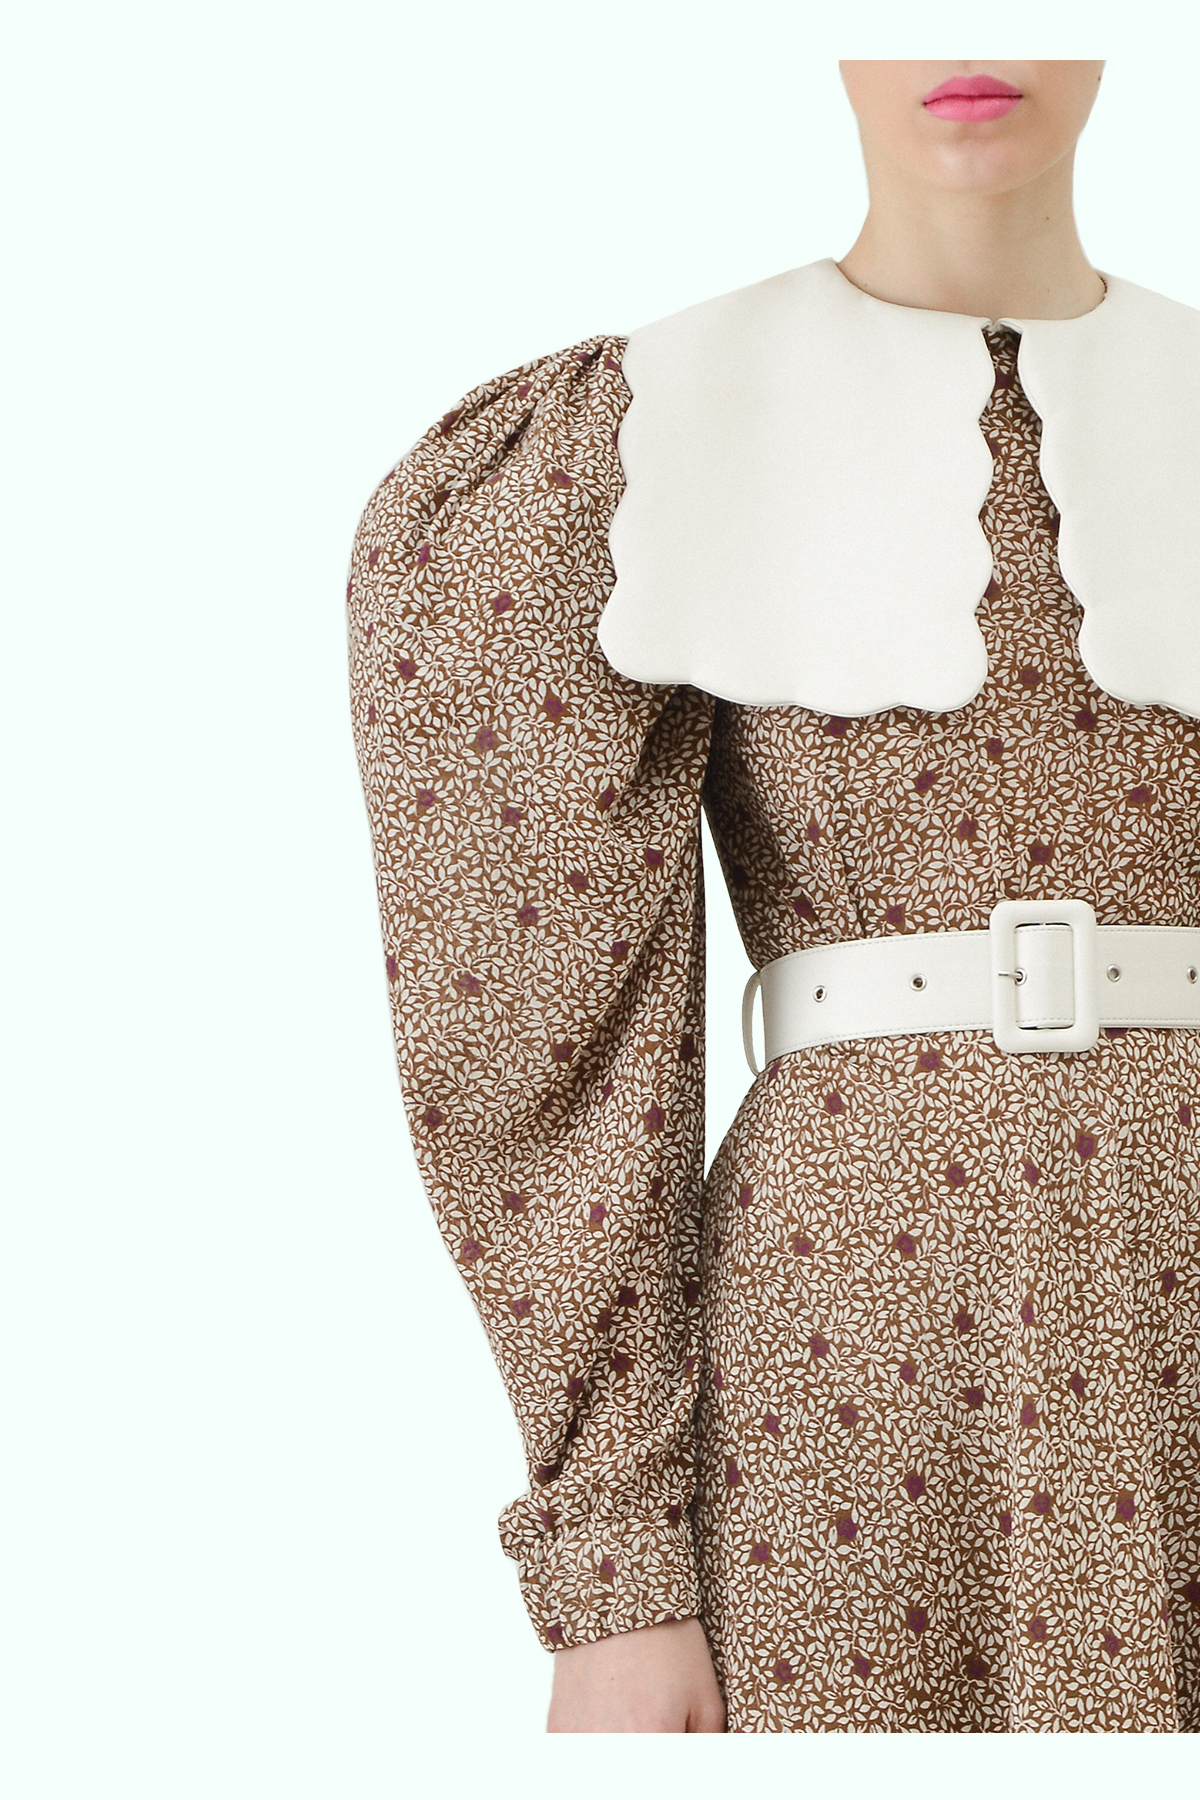 Floral print chiffon dress with puff sleeves and white vegan leather puritan collar 2